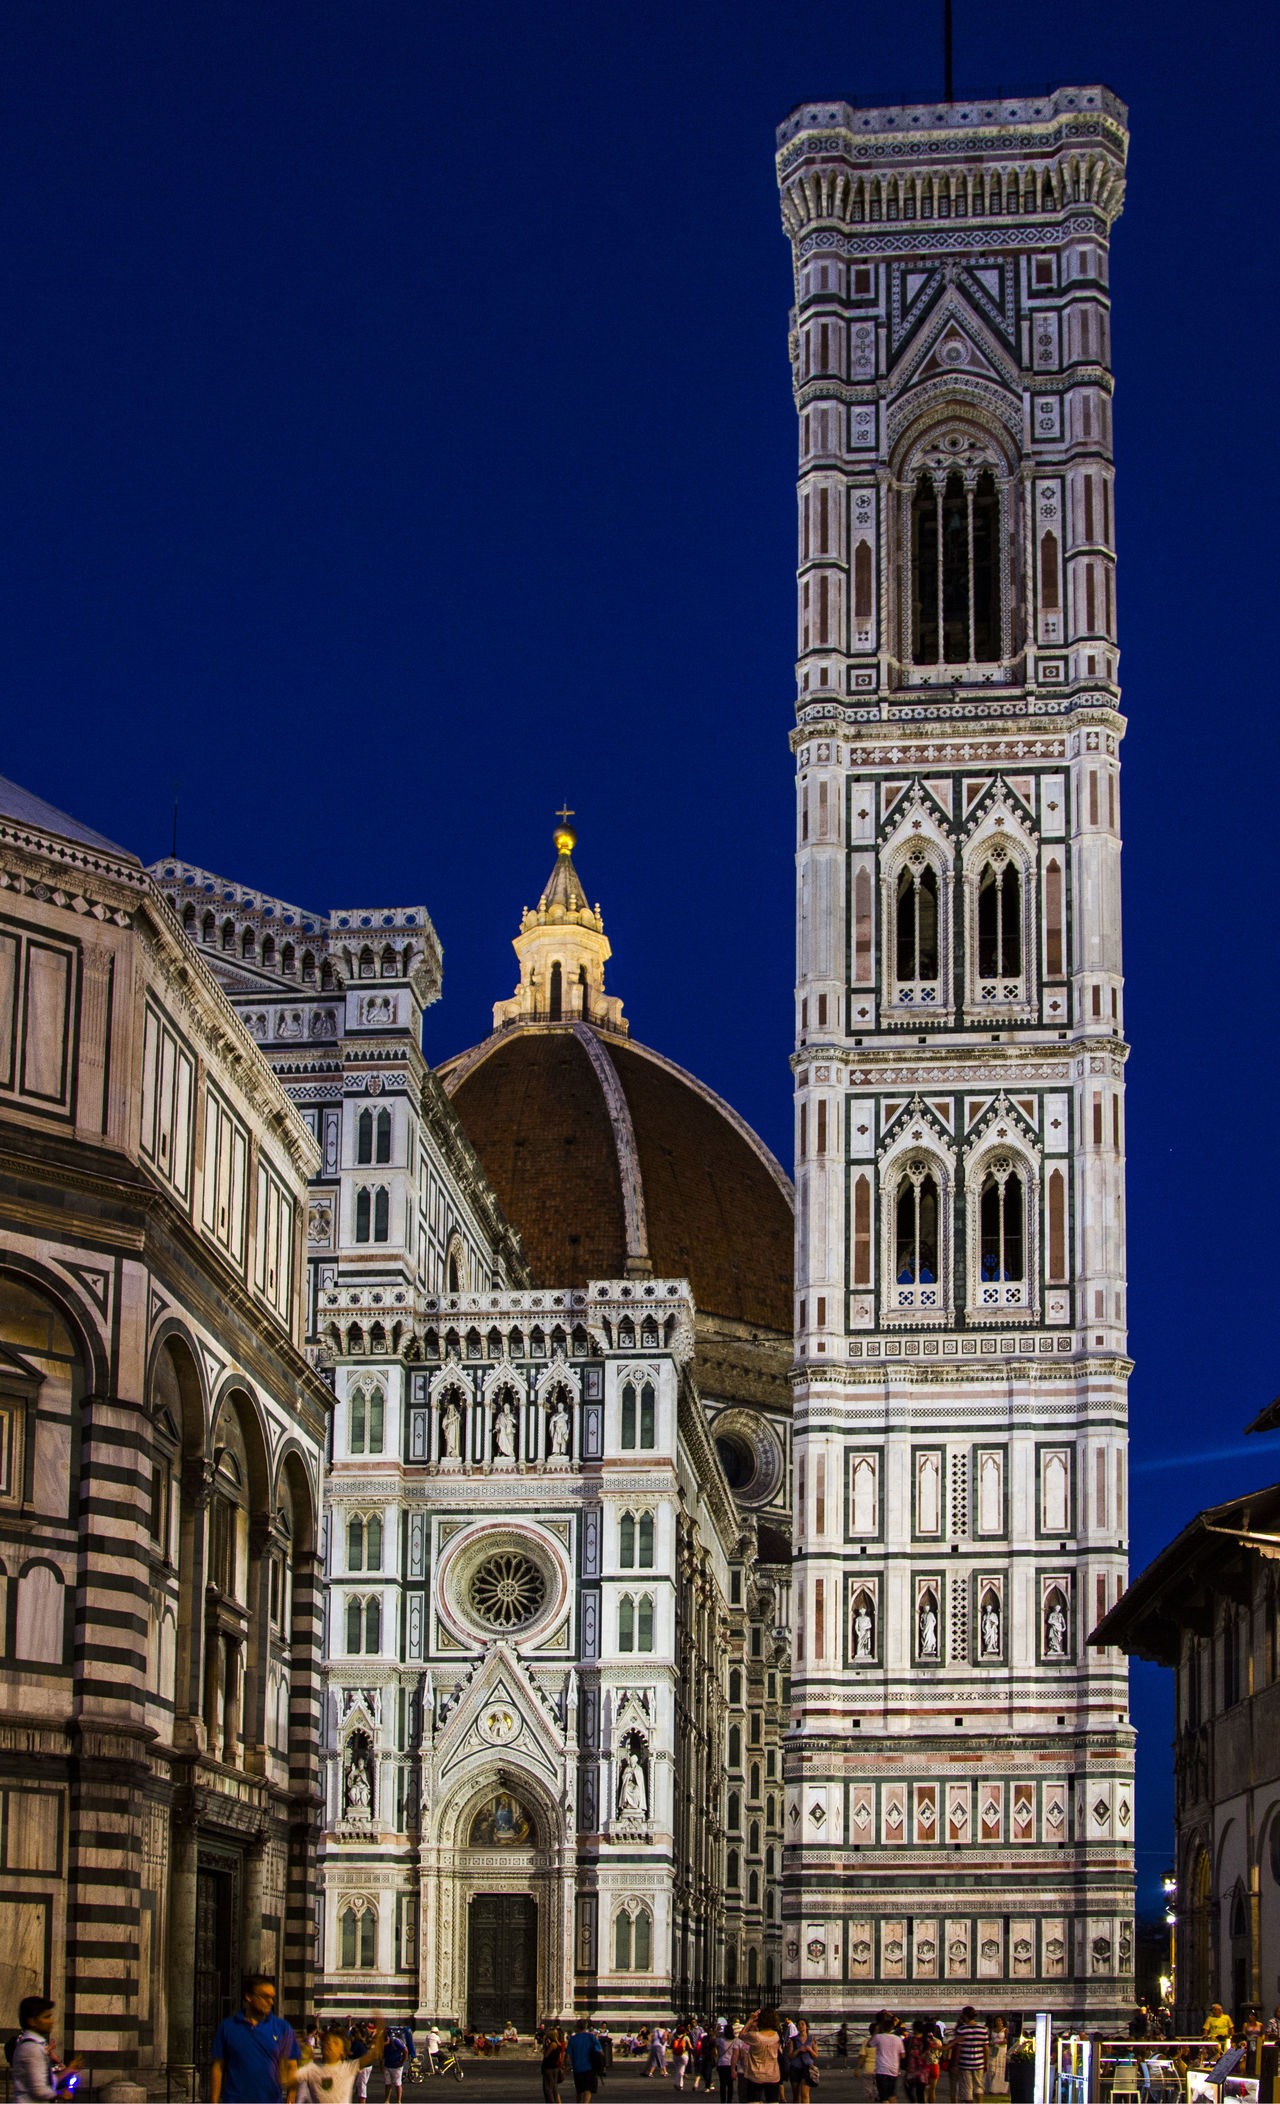 Duomo Florence Place Of Worship Architecture Travel Destinations Tower Building Exterior Religion Clear Sky Outdoors Sky Travel Photography Cityscape People City Illuminated Night Travel In Italy Architecture Dusk Tourism Historical Building Florence, Italy Florence By Night Firenze By Night Blue Neighborhood Map Place Of Heart